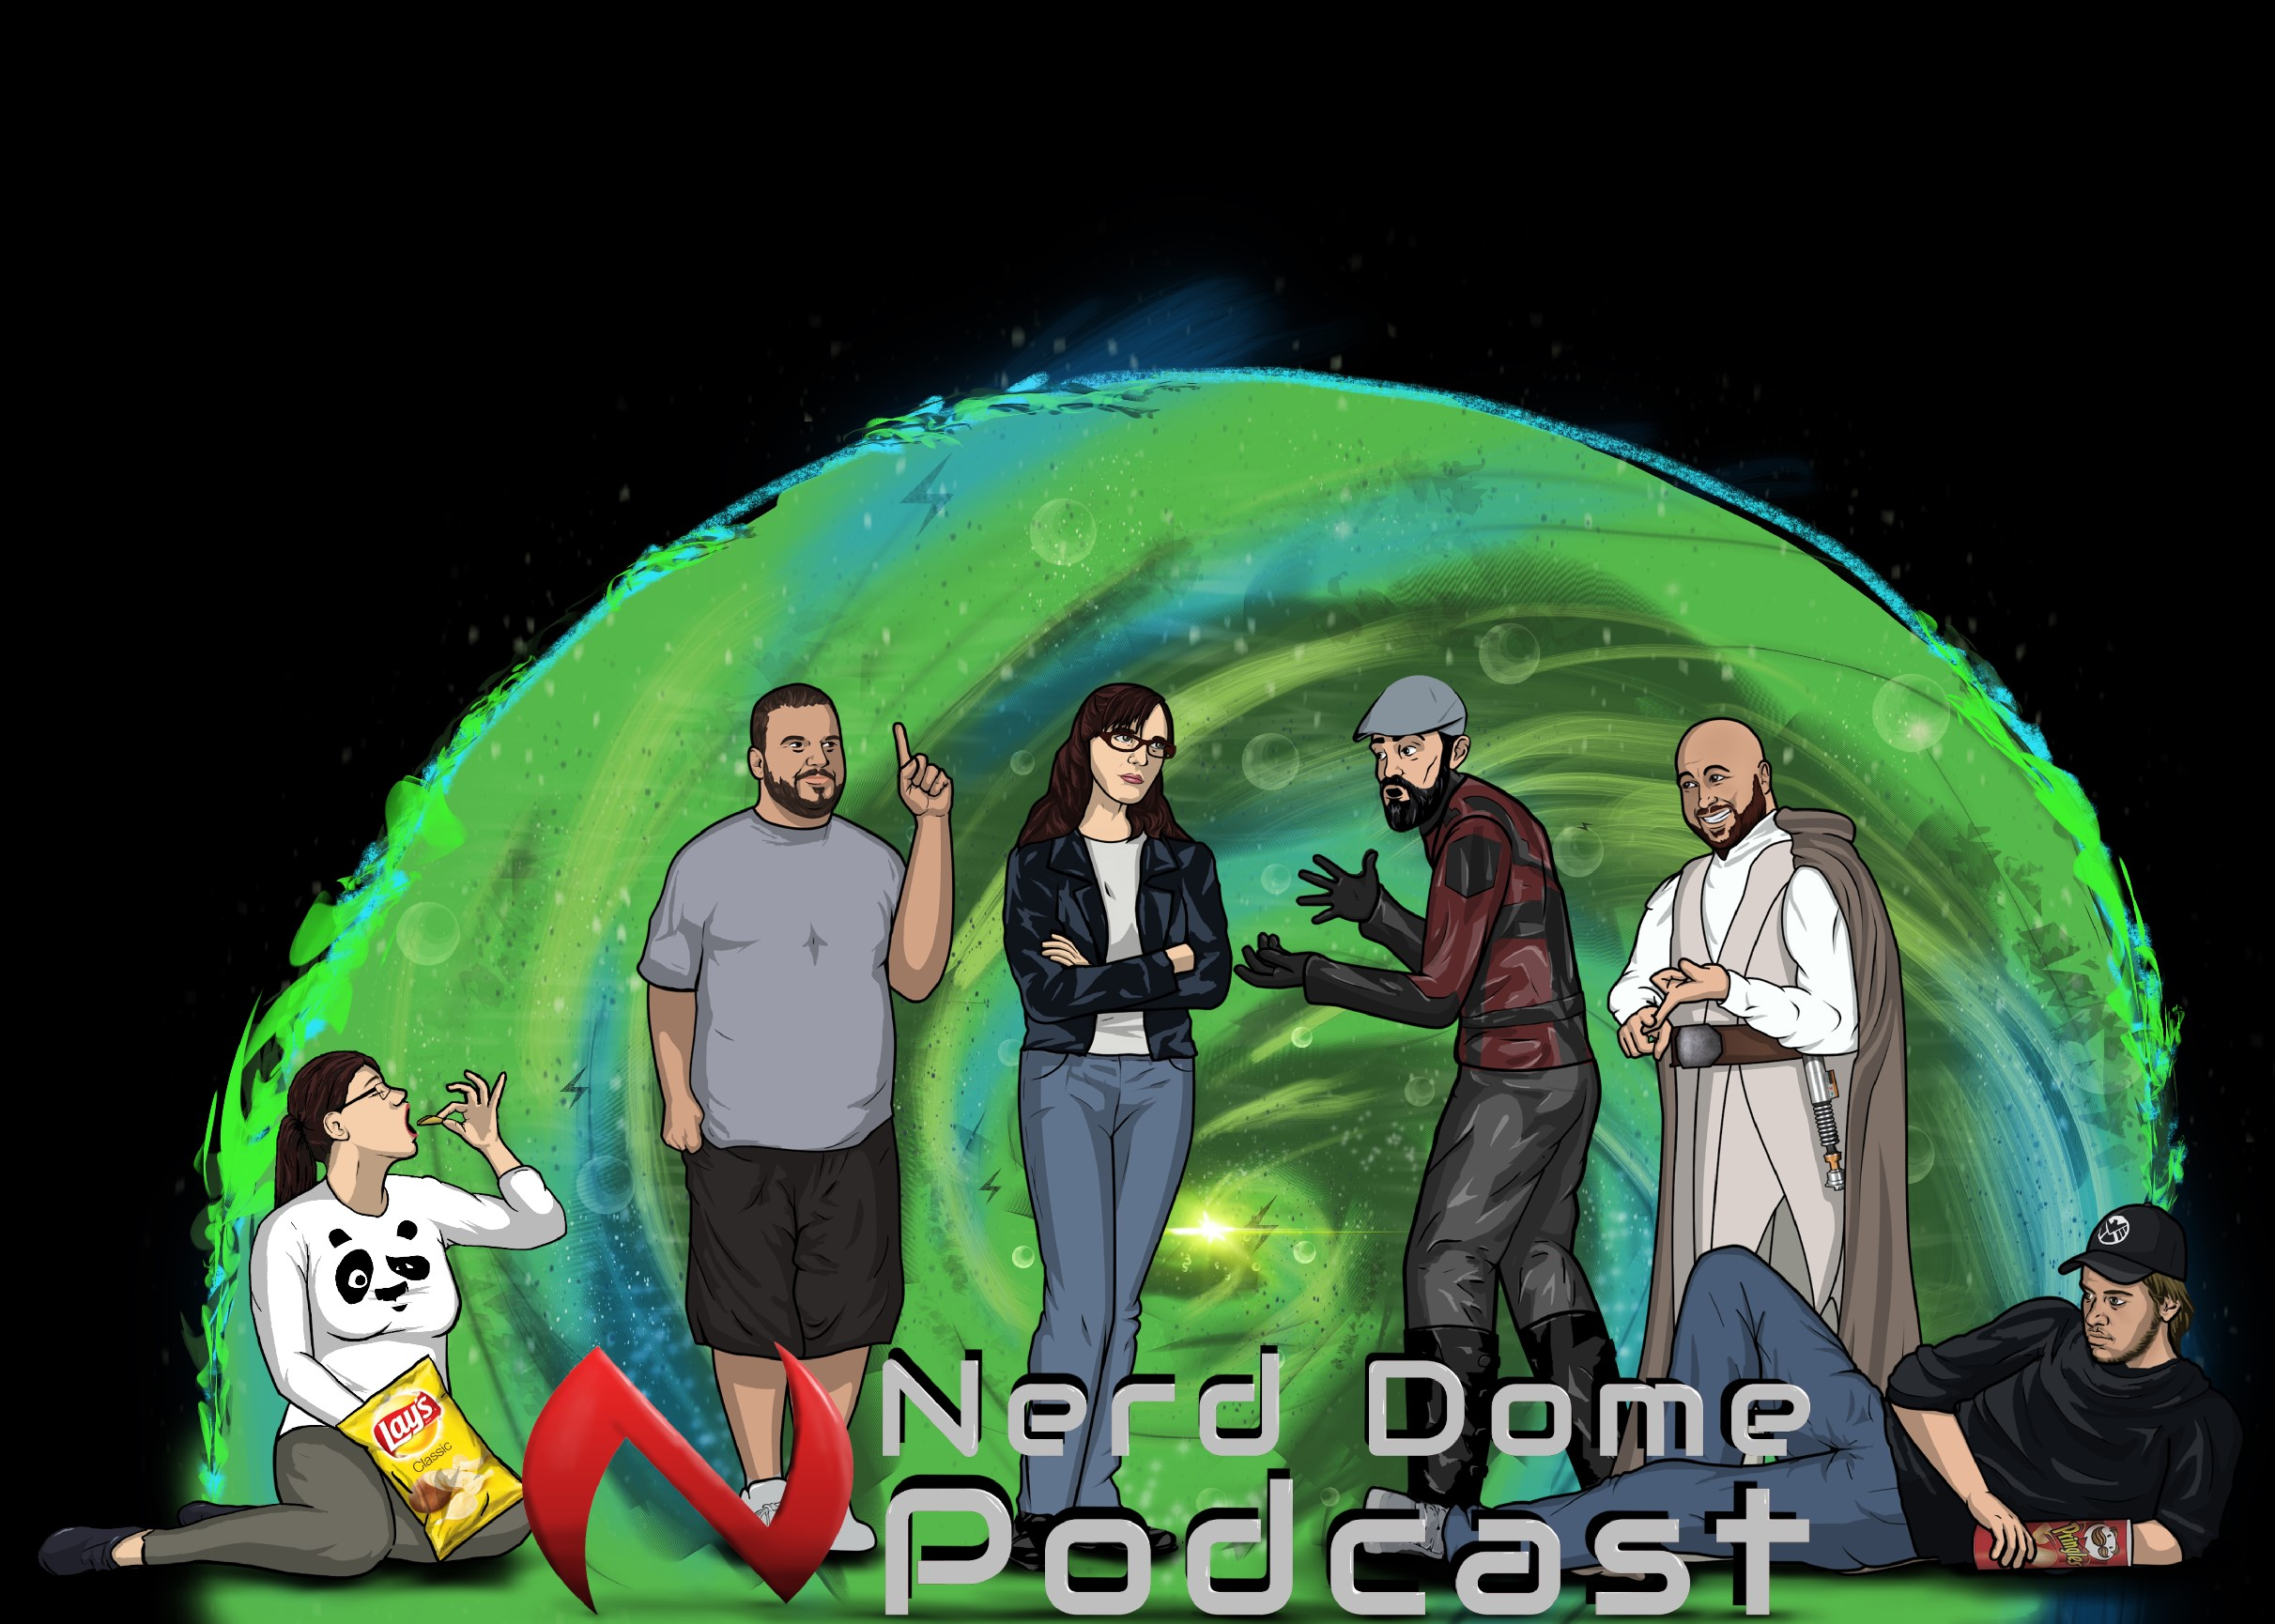 The Nerd Dome Podcast